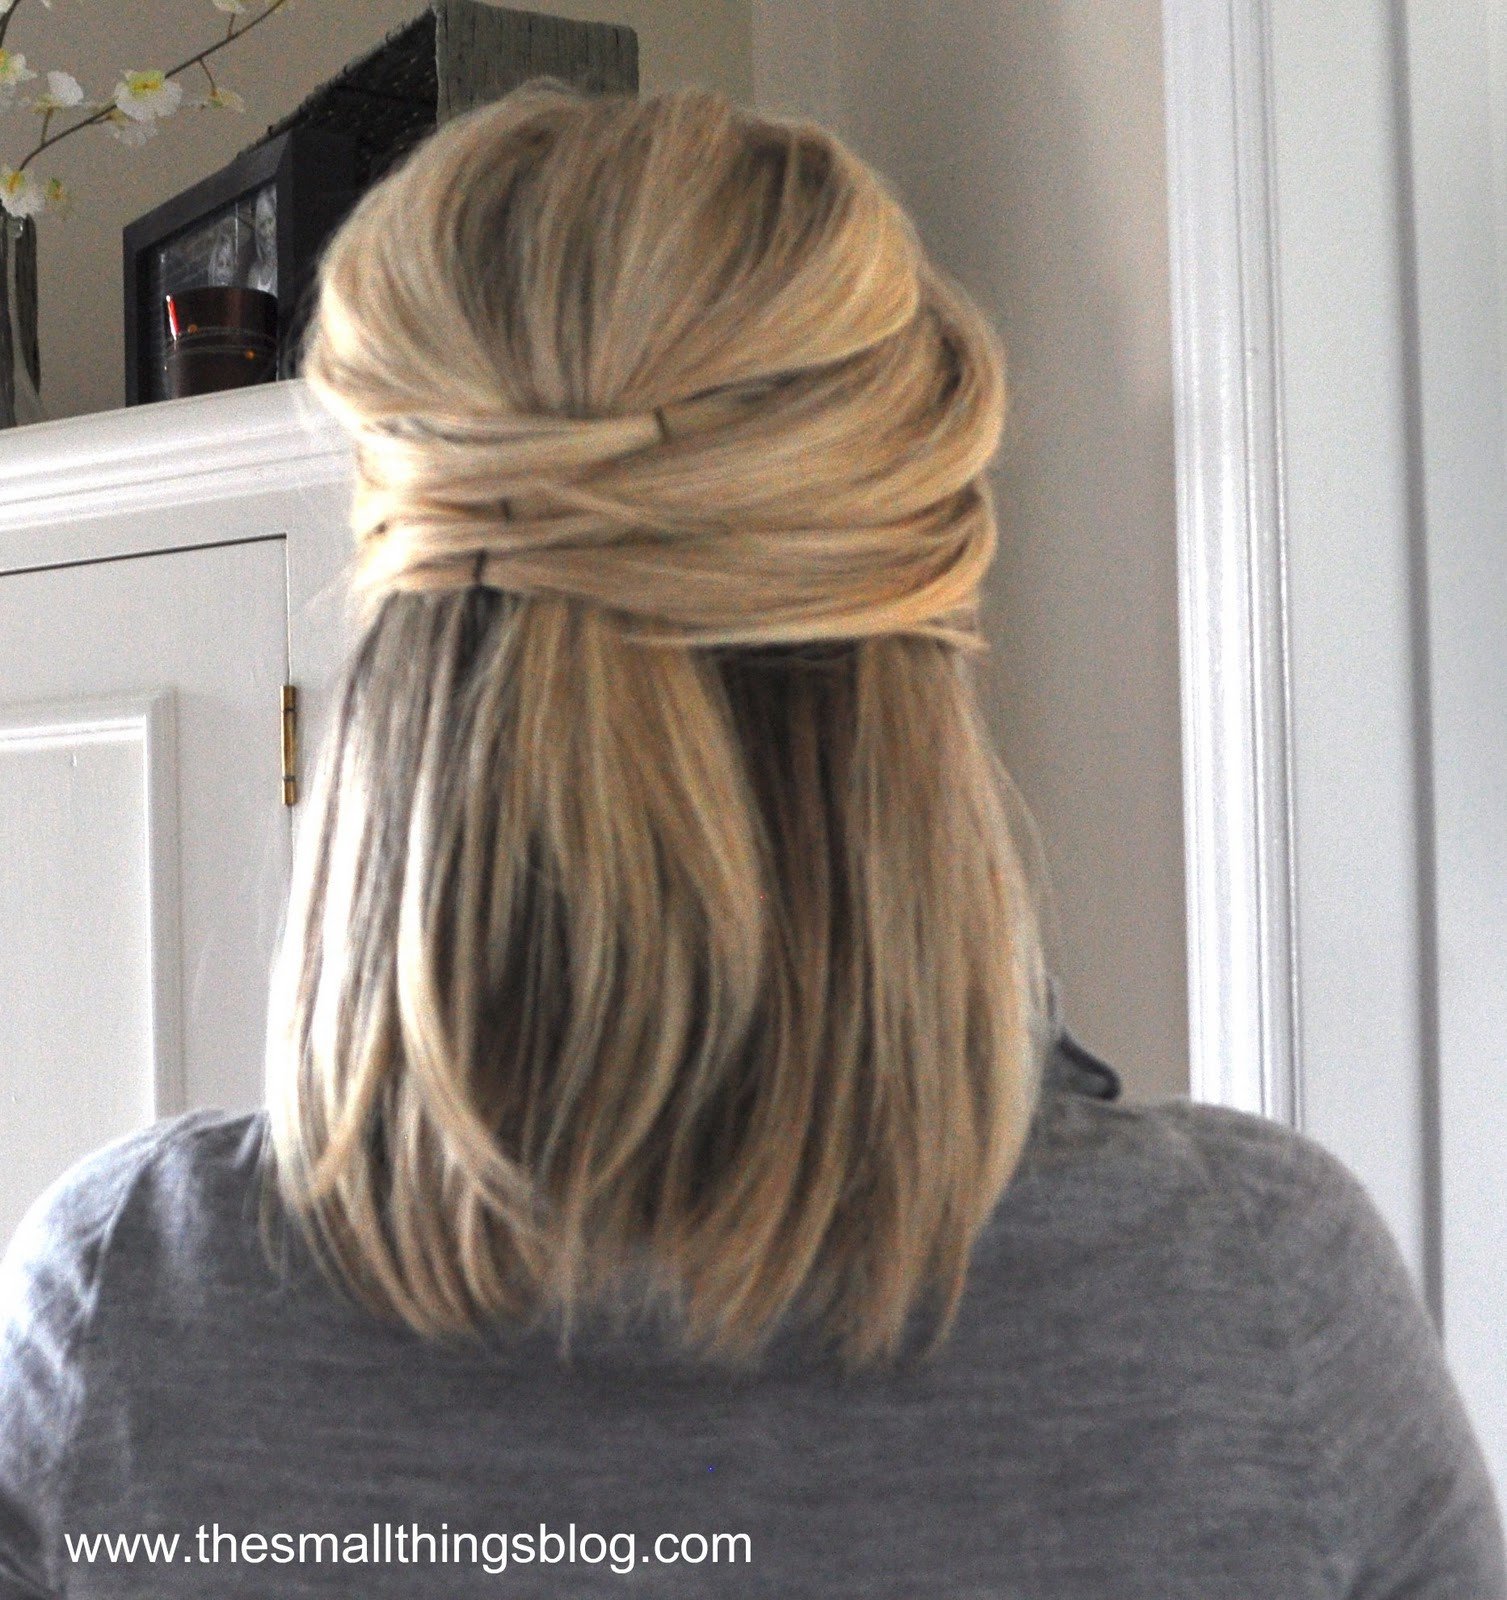 Best ideas about Easy Up Hairstyles . Save or Pin Elegant Half Up – The Small Things Blog Now.